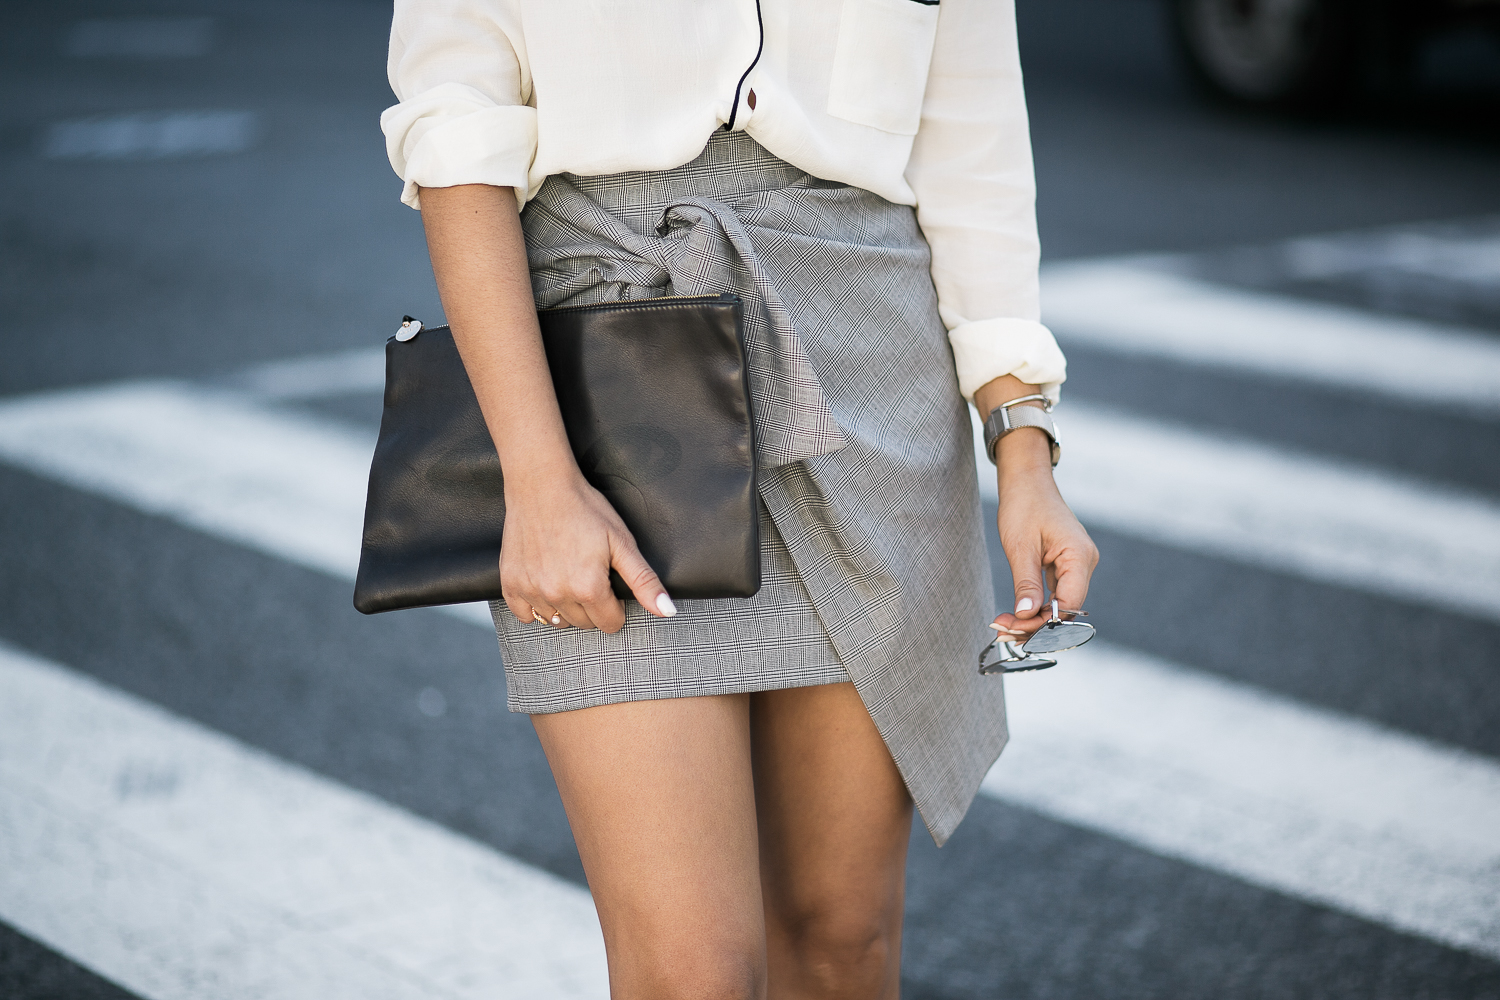 Style MBA wears Clare V Clutch at Nordstrom